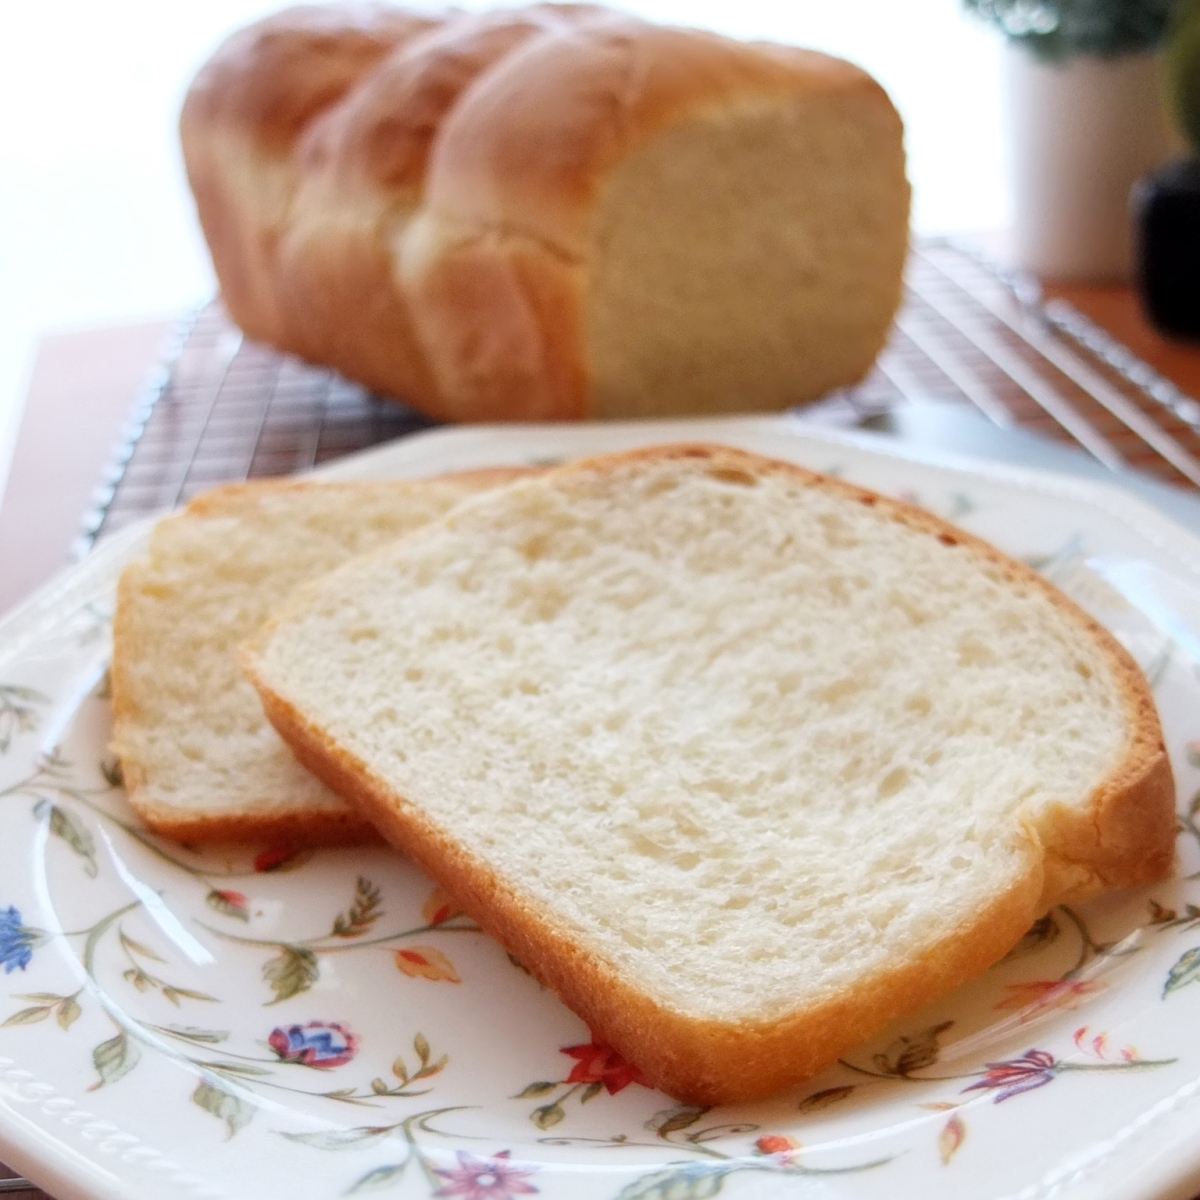 Pain de mie - French sandwich or toast bread recipe!